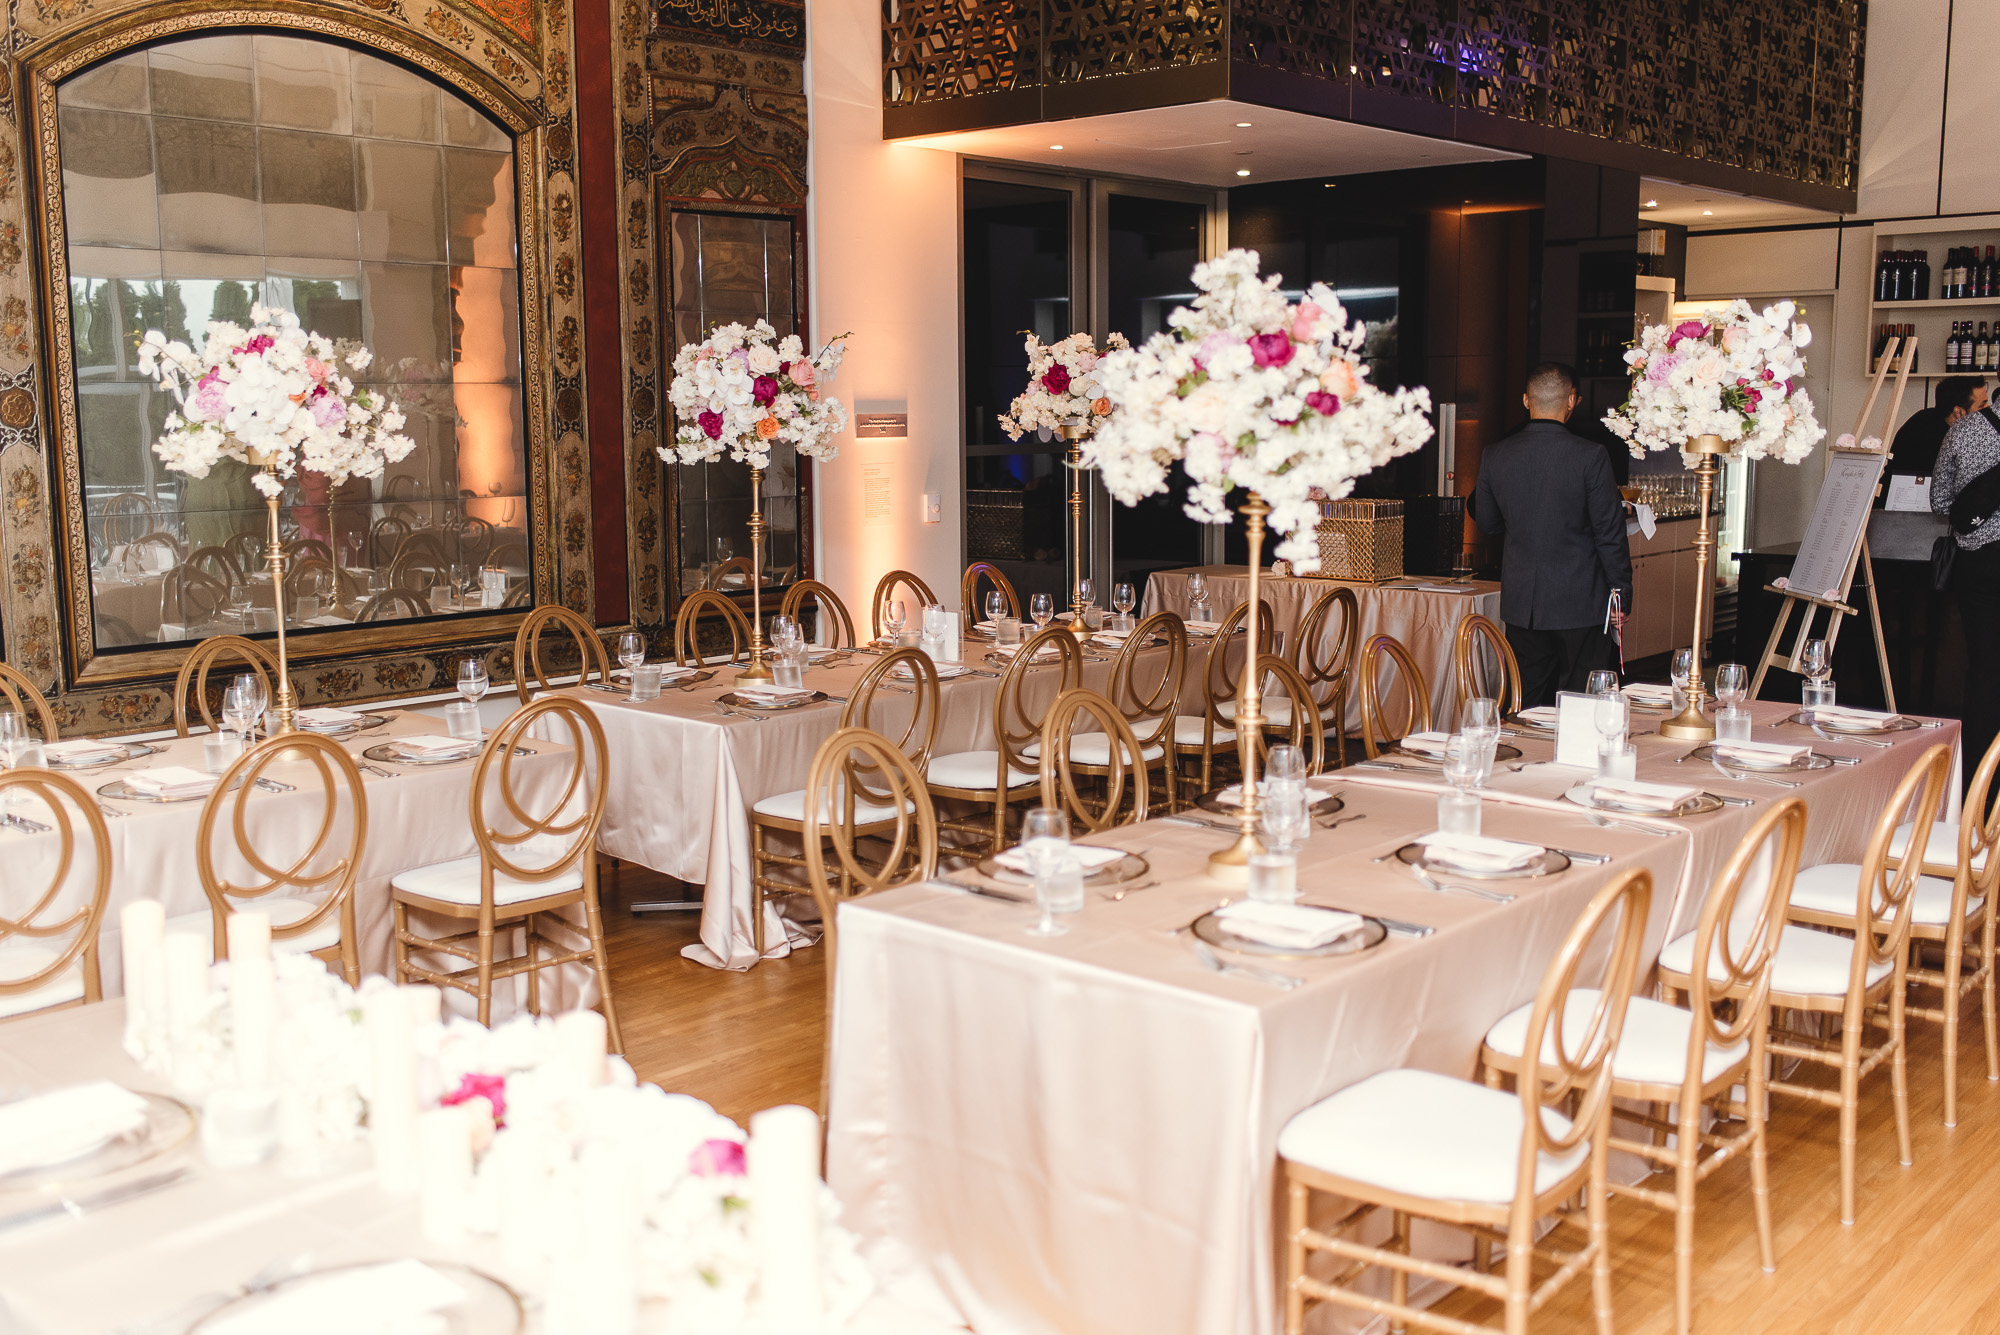 Wedding tables at the Aga Khan Museum in Toronto